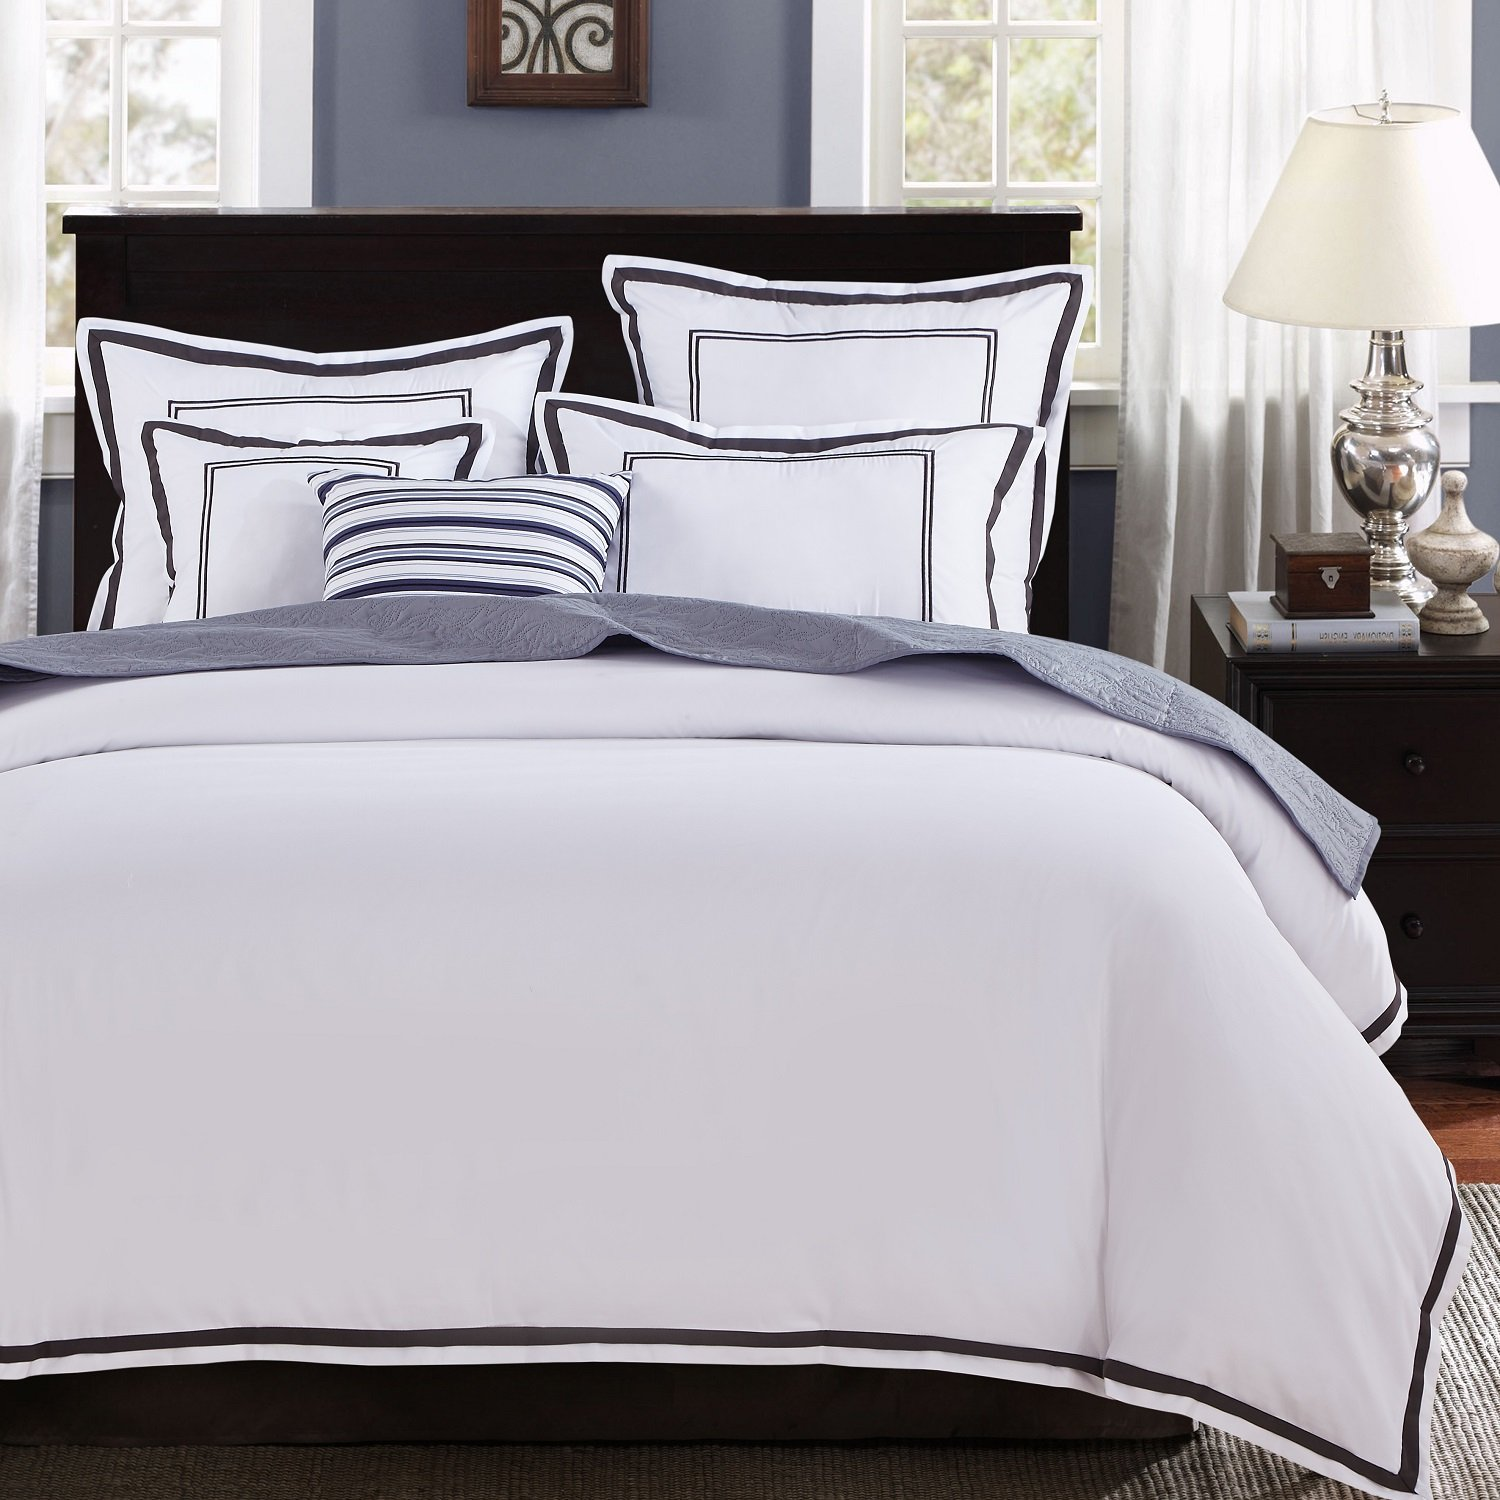 Mellanni Duvet Cover Set Hotel Collection - Double Bedding 3 Piece Full / Queen, Hotel White With Gray Embroidery